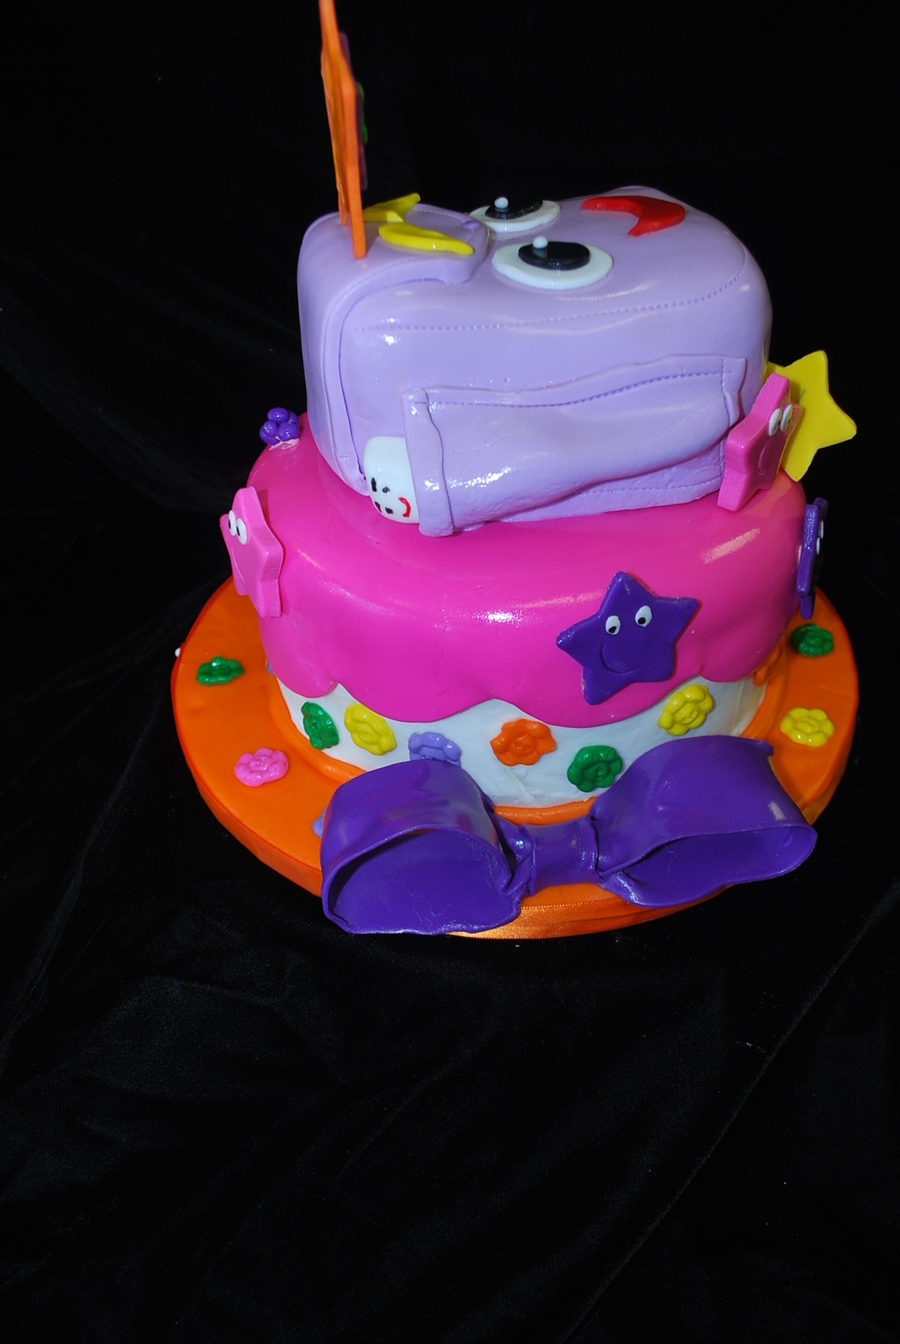 Dora Backpack And Map on Cake Central